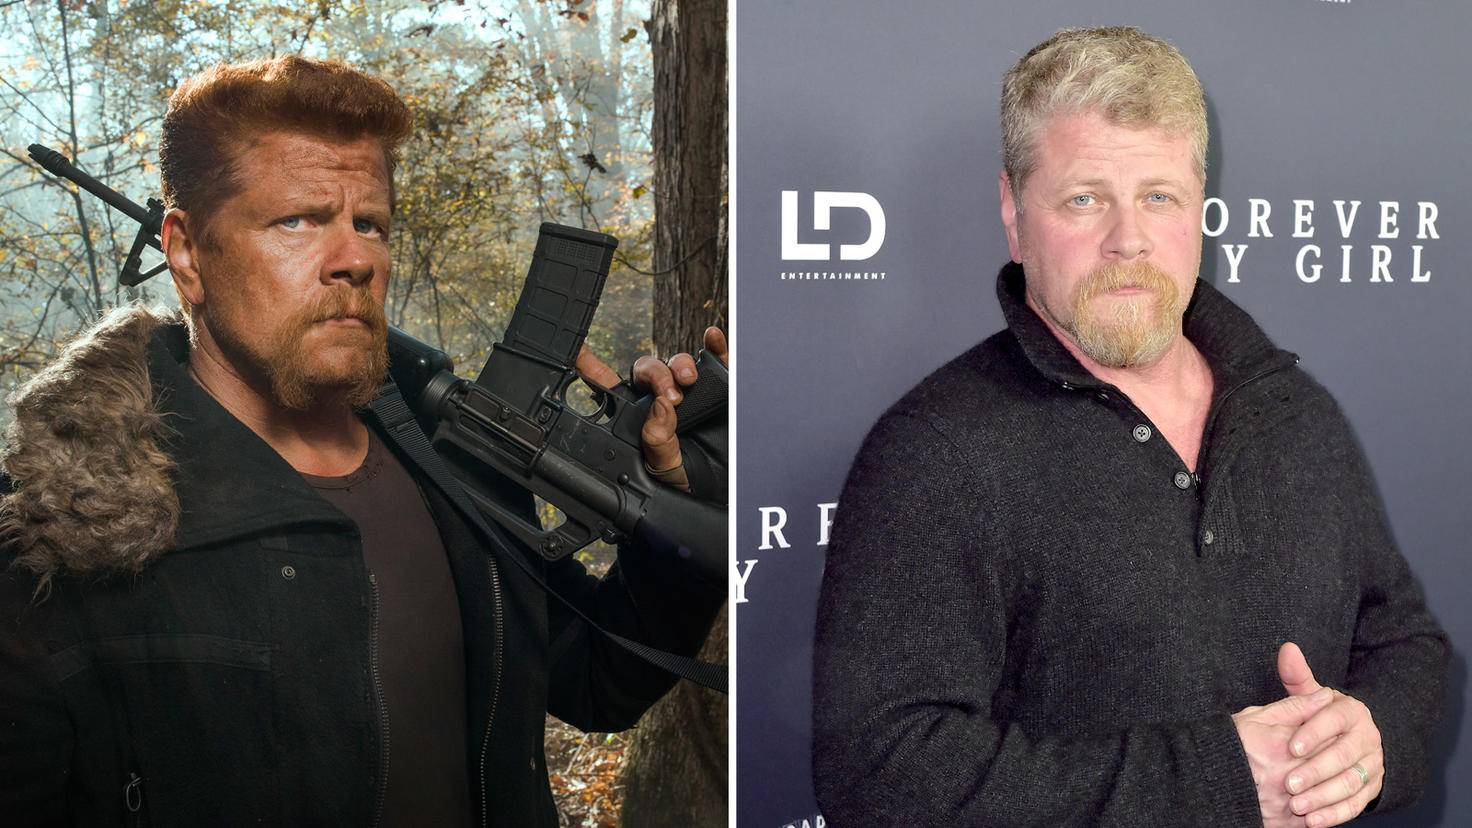 The Walking Dead-S05-Abraham-Ben Leuner-AMC-Michael Cudlitz-picture allianceGeisler-Fotopress-98831891